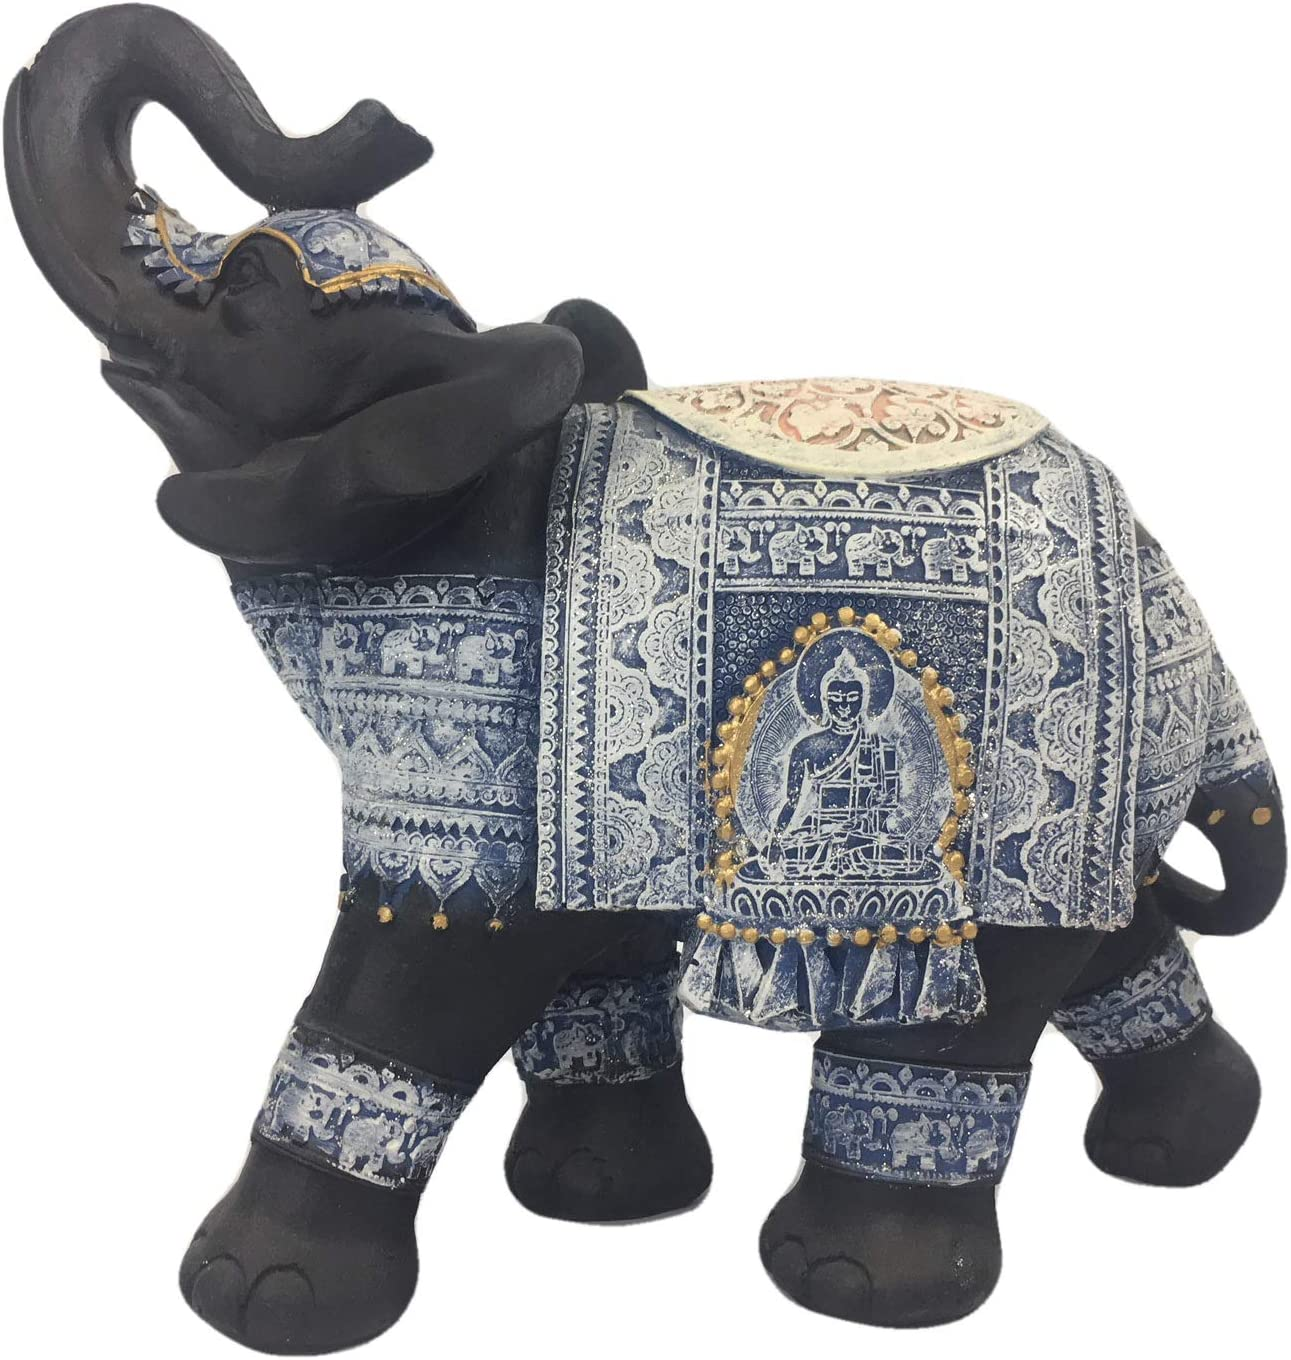 Hope Brands Thai Black Elephant Statue Figurine Polystone Covered with Delicate Ornate Buddhist Caparison - Large 10 x 9 x 5 (Blue)